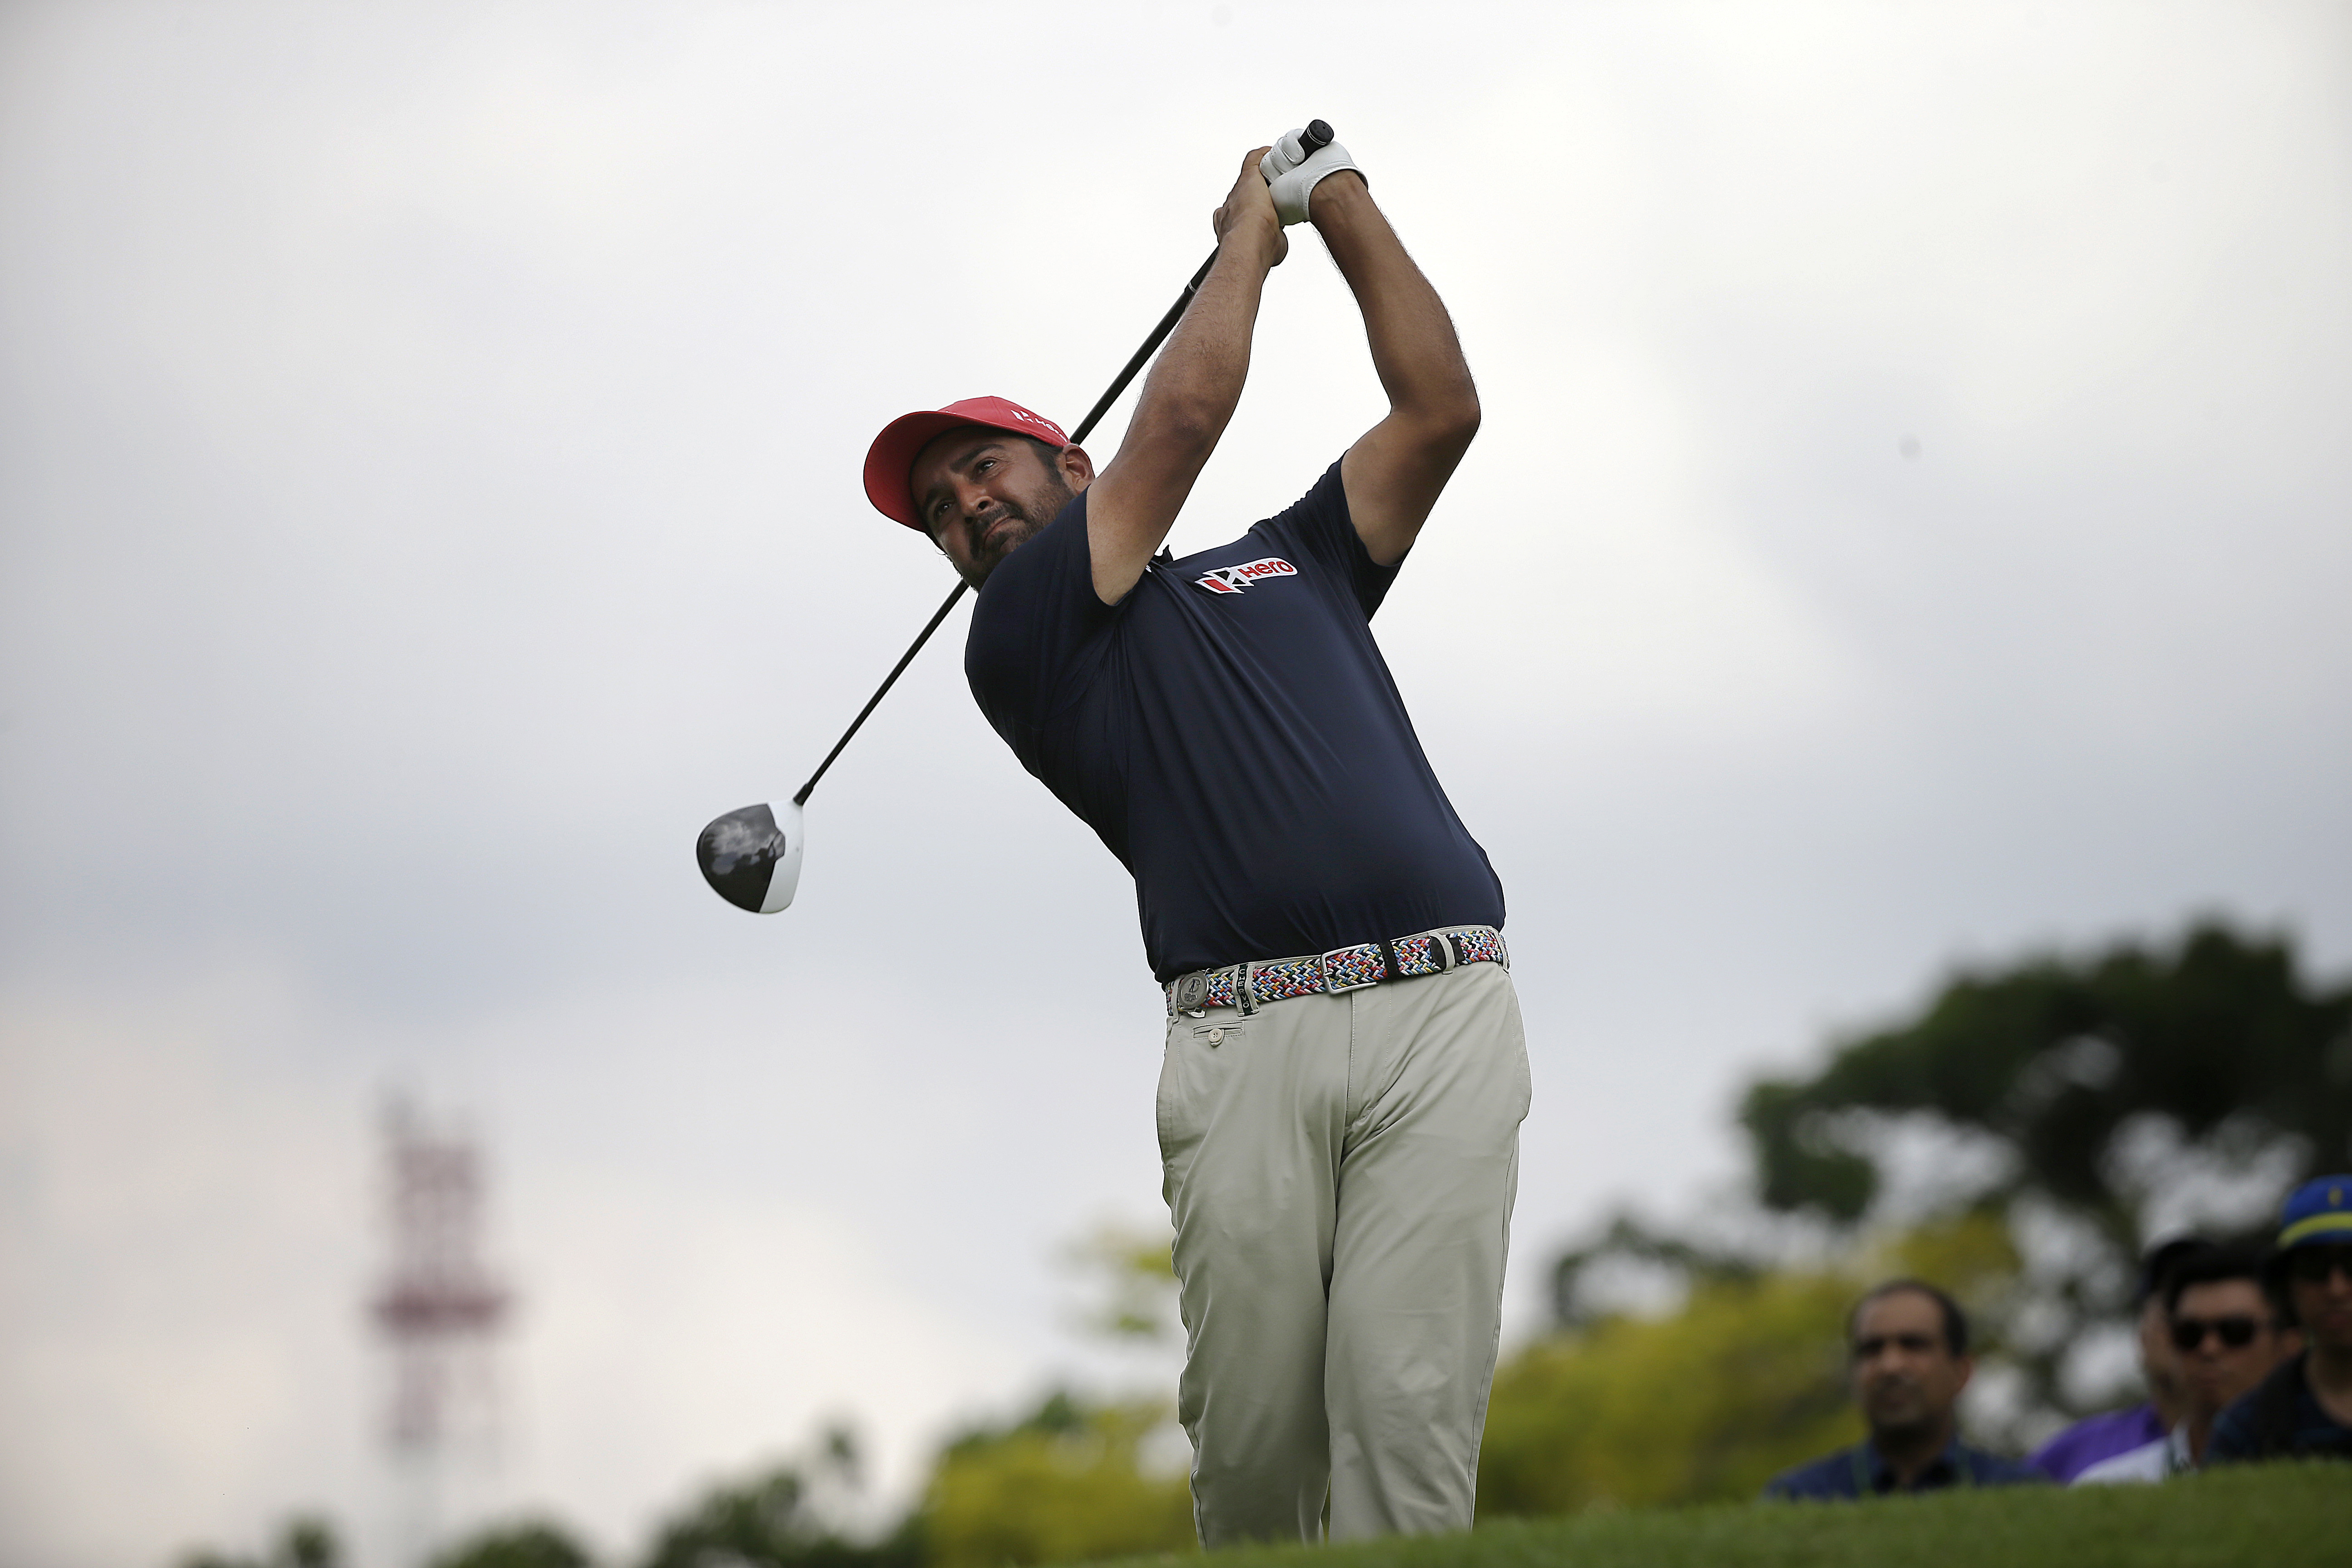 Shiv Kapur of India tees off on the 18th hole during the first round of the SMBC Singapore Open golf tournament at the Sentosa Golf Club's Serapong Course on Thursday, Jan. 28, 2016, in Singapore. (AP Photo/Wong Maye-E)